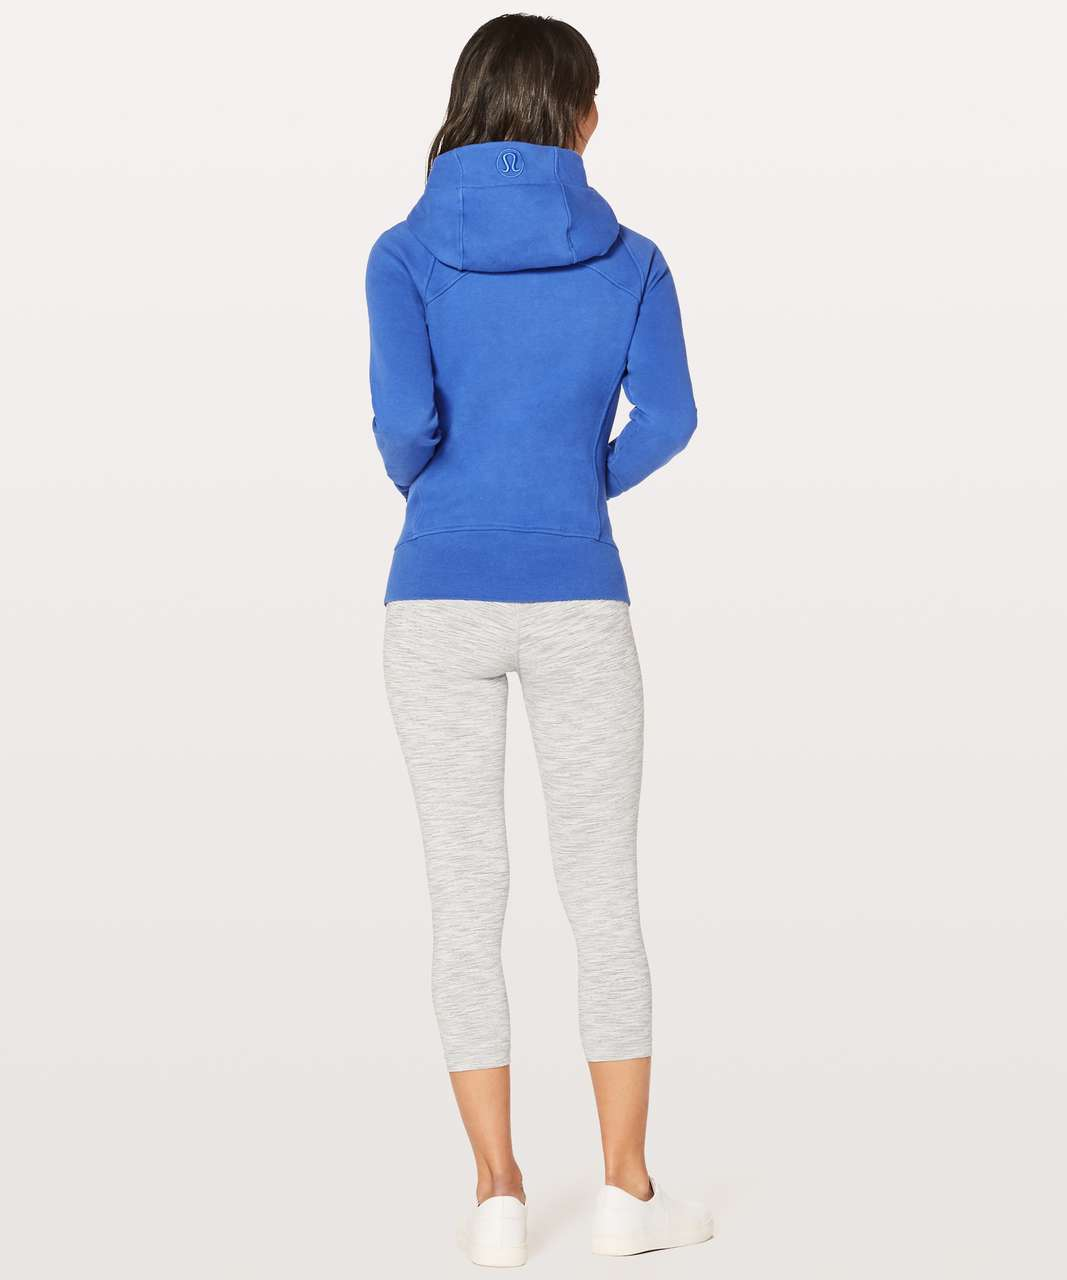 Lululemon Scuba Hoodie *Light Cotton Fleece - Blazer Blue (First Release)